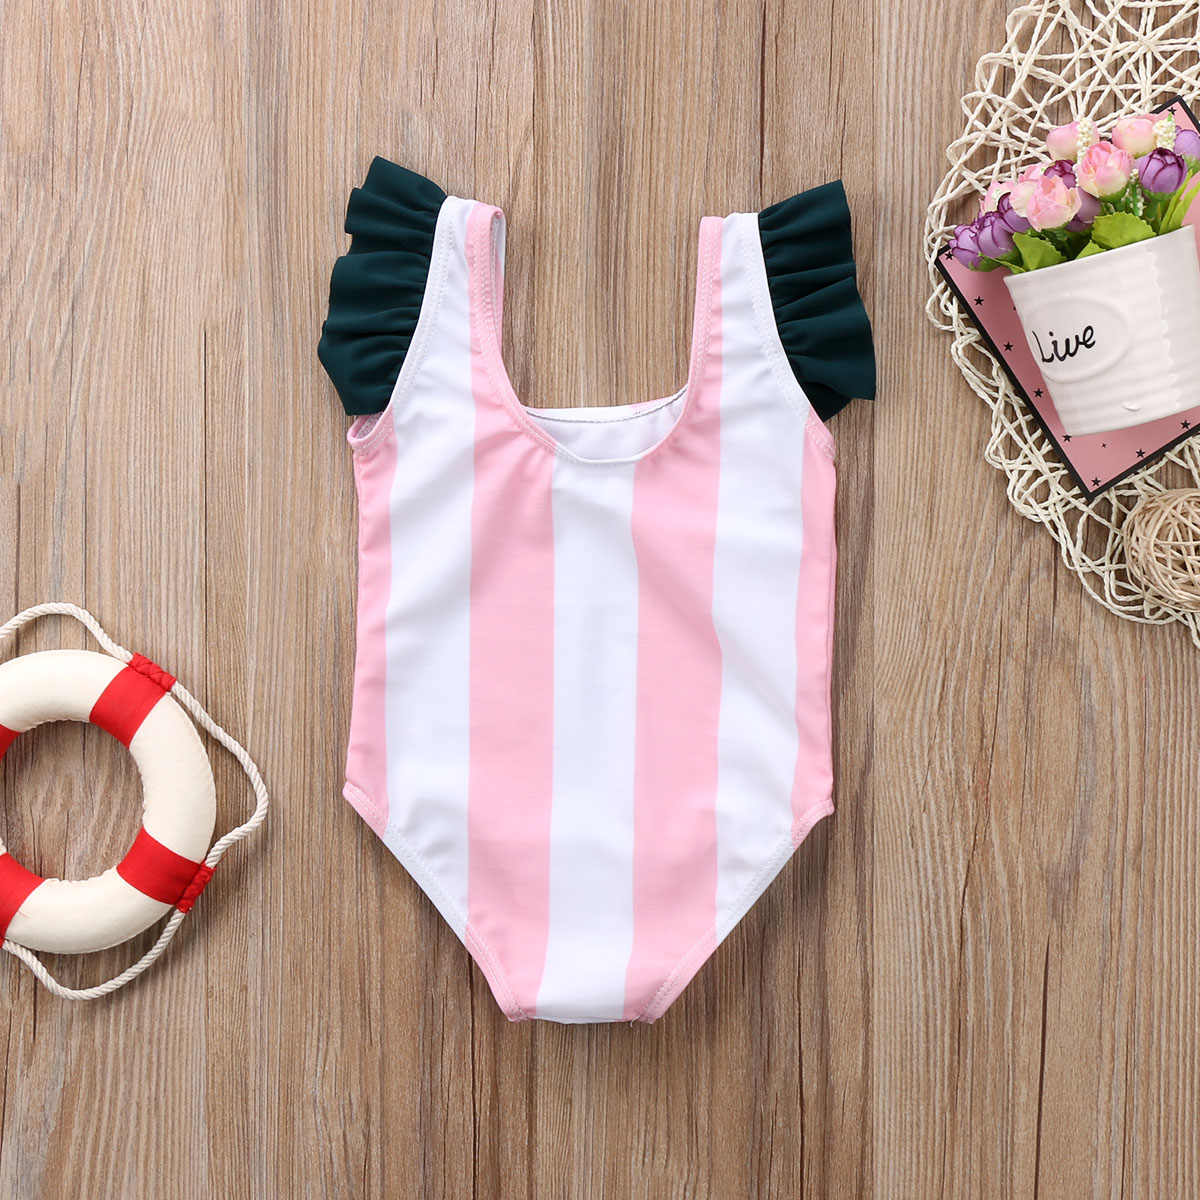 1bc3975eac ... Emmababy Newborn Baby Girls Cartoon Stripes One Piece Swimwear Swimsuit  Clothes Bathing Suit